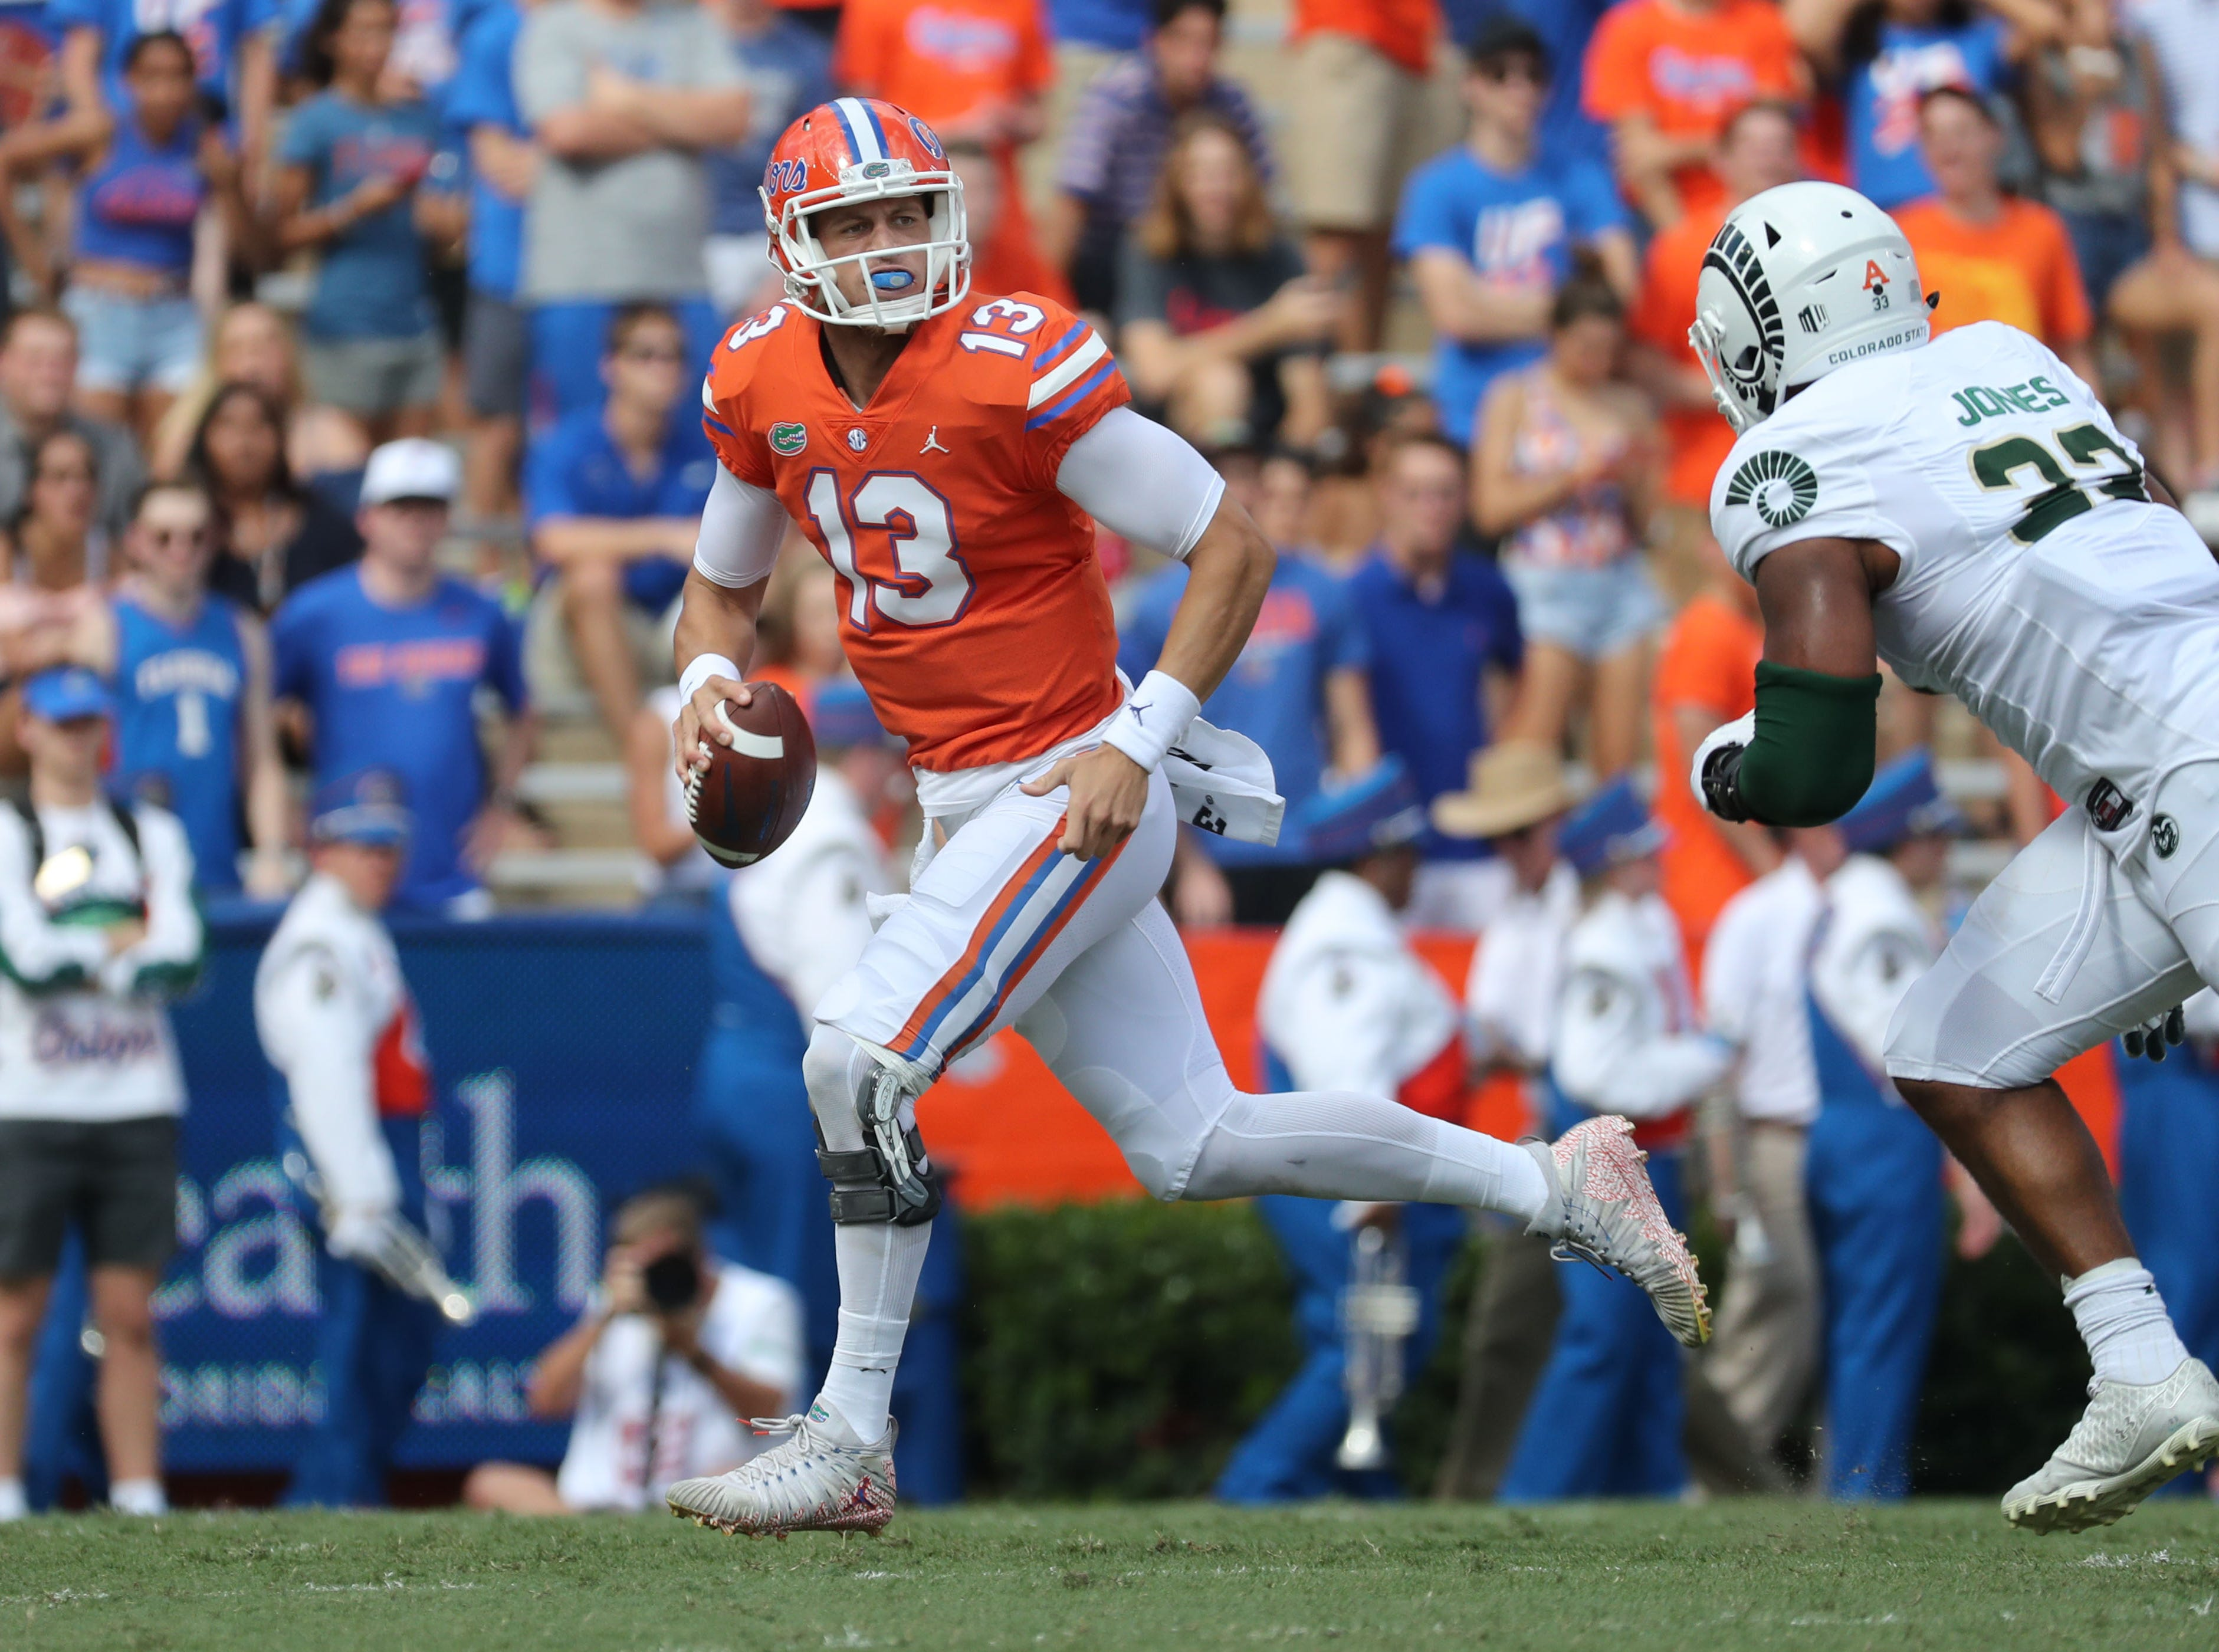 Sep 15, 2018; Gainesville, FL, USA; Florida Gators quarterback Feleipe Franks (13) runs out of the pocket as Colorado State Rams defensive end Emmanuel Jones (33) rushes during the first quarter at Ben Hill Griffin Stadium. Mandatory Credit: Kim Klement-USA TODAY Sports